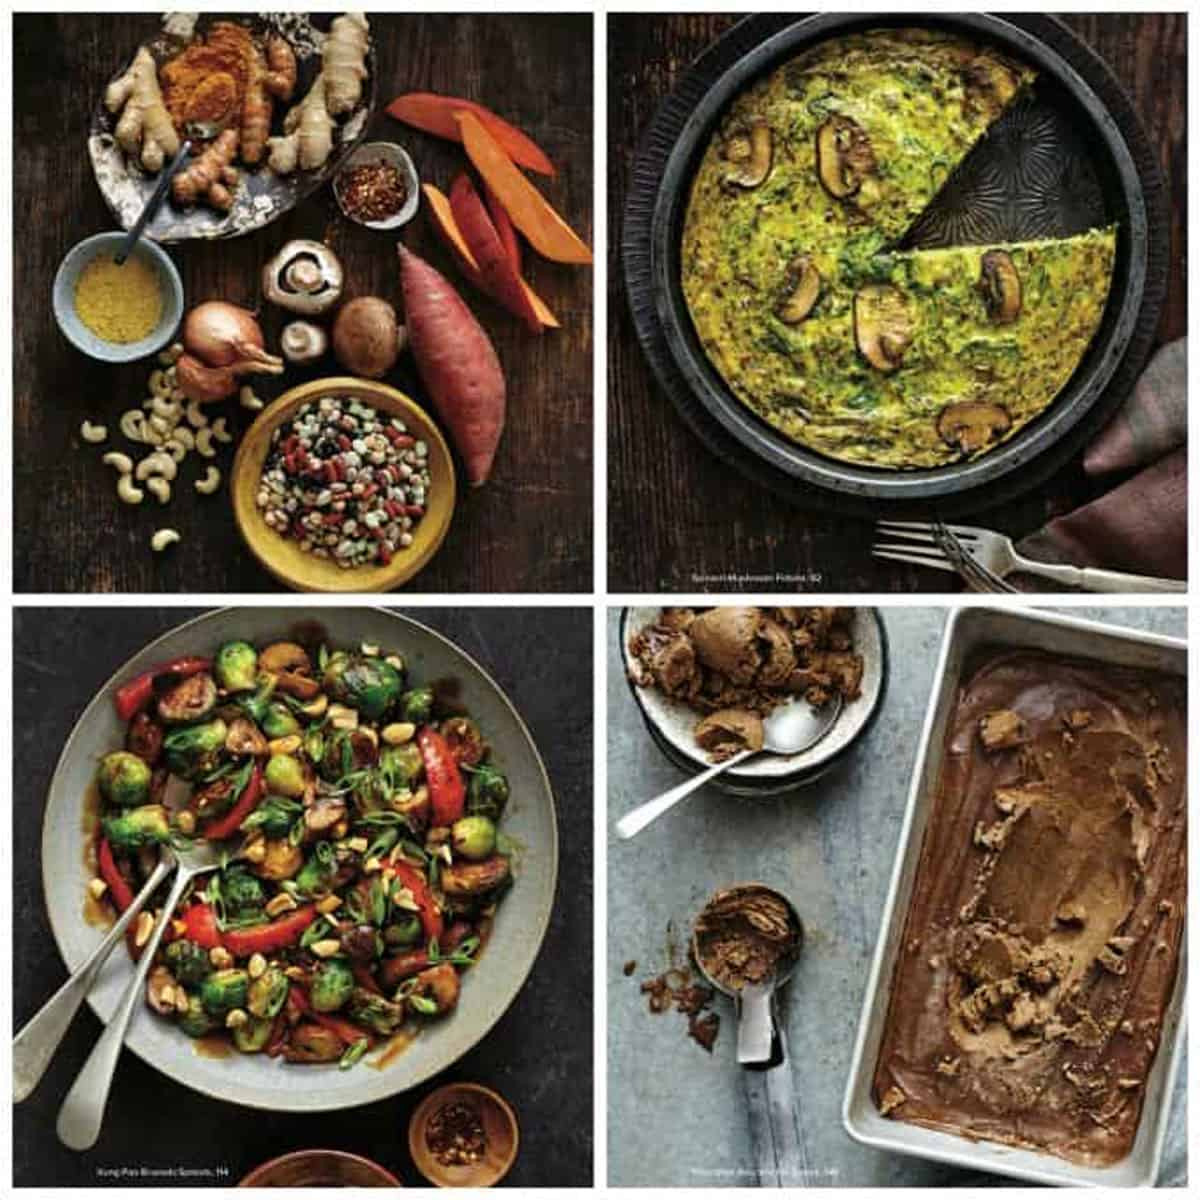 4 photo collage of recipes from the cookbook.